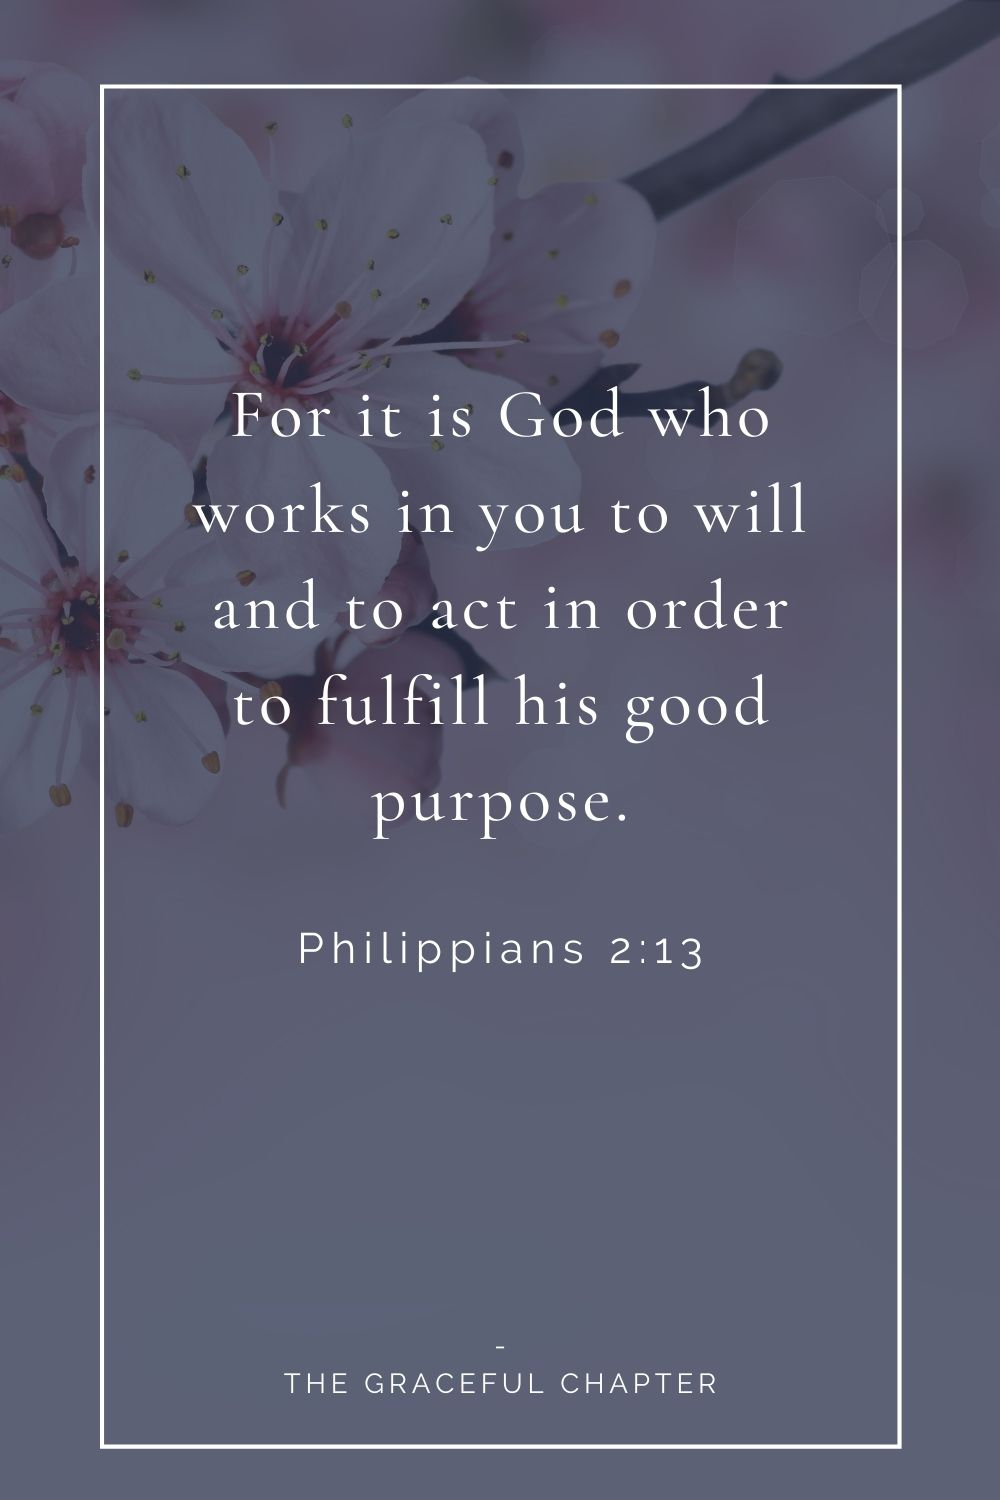 For it is God who works in you to will and to act in order to fulfill his good purpose. Philippians 2:13